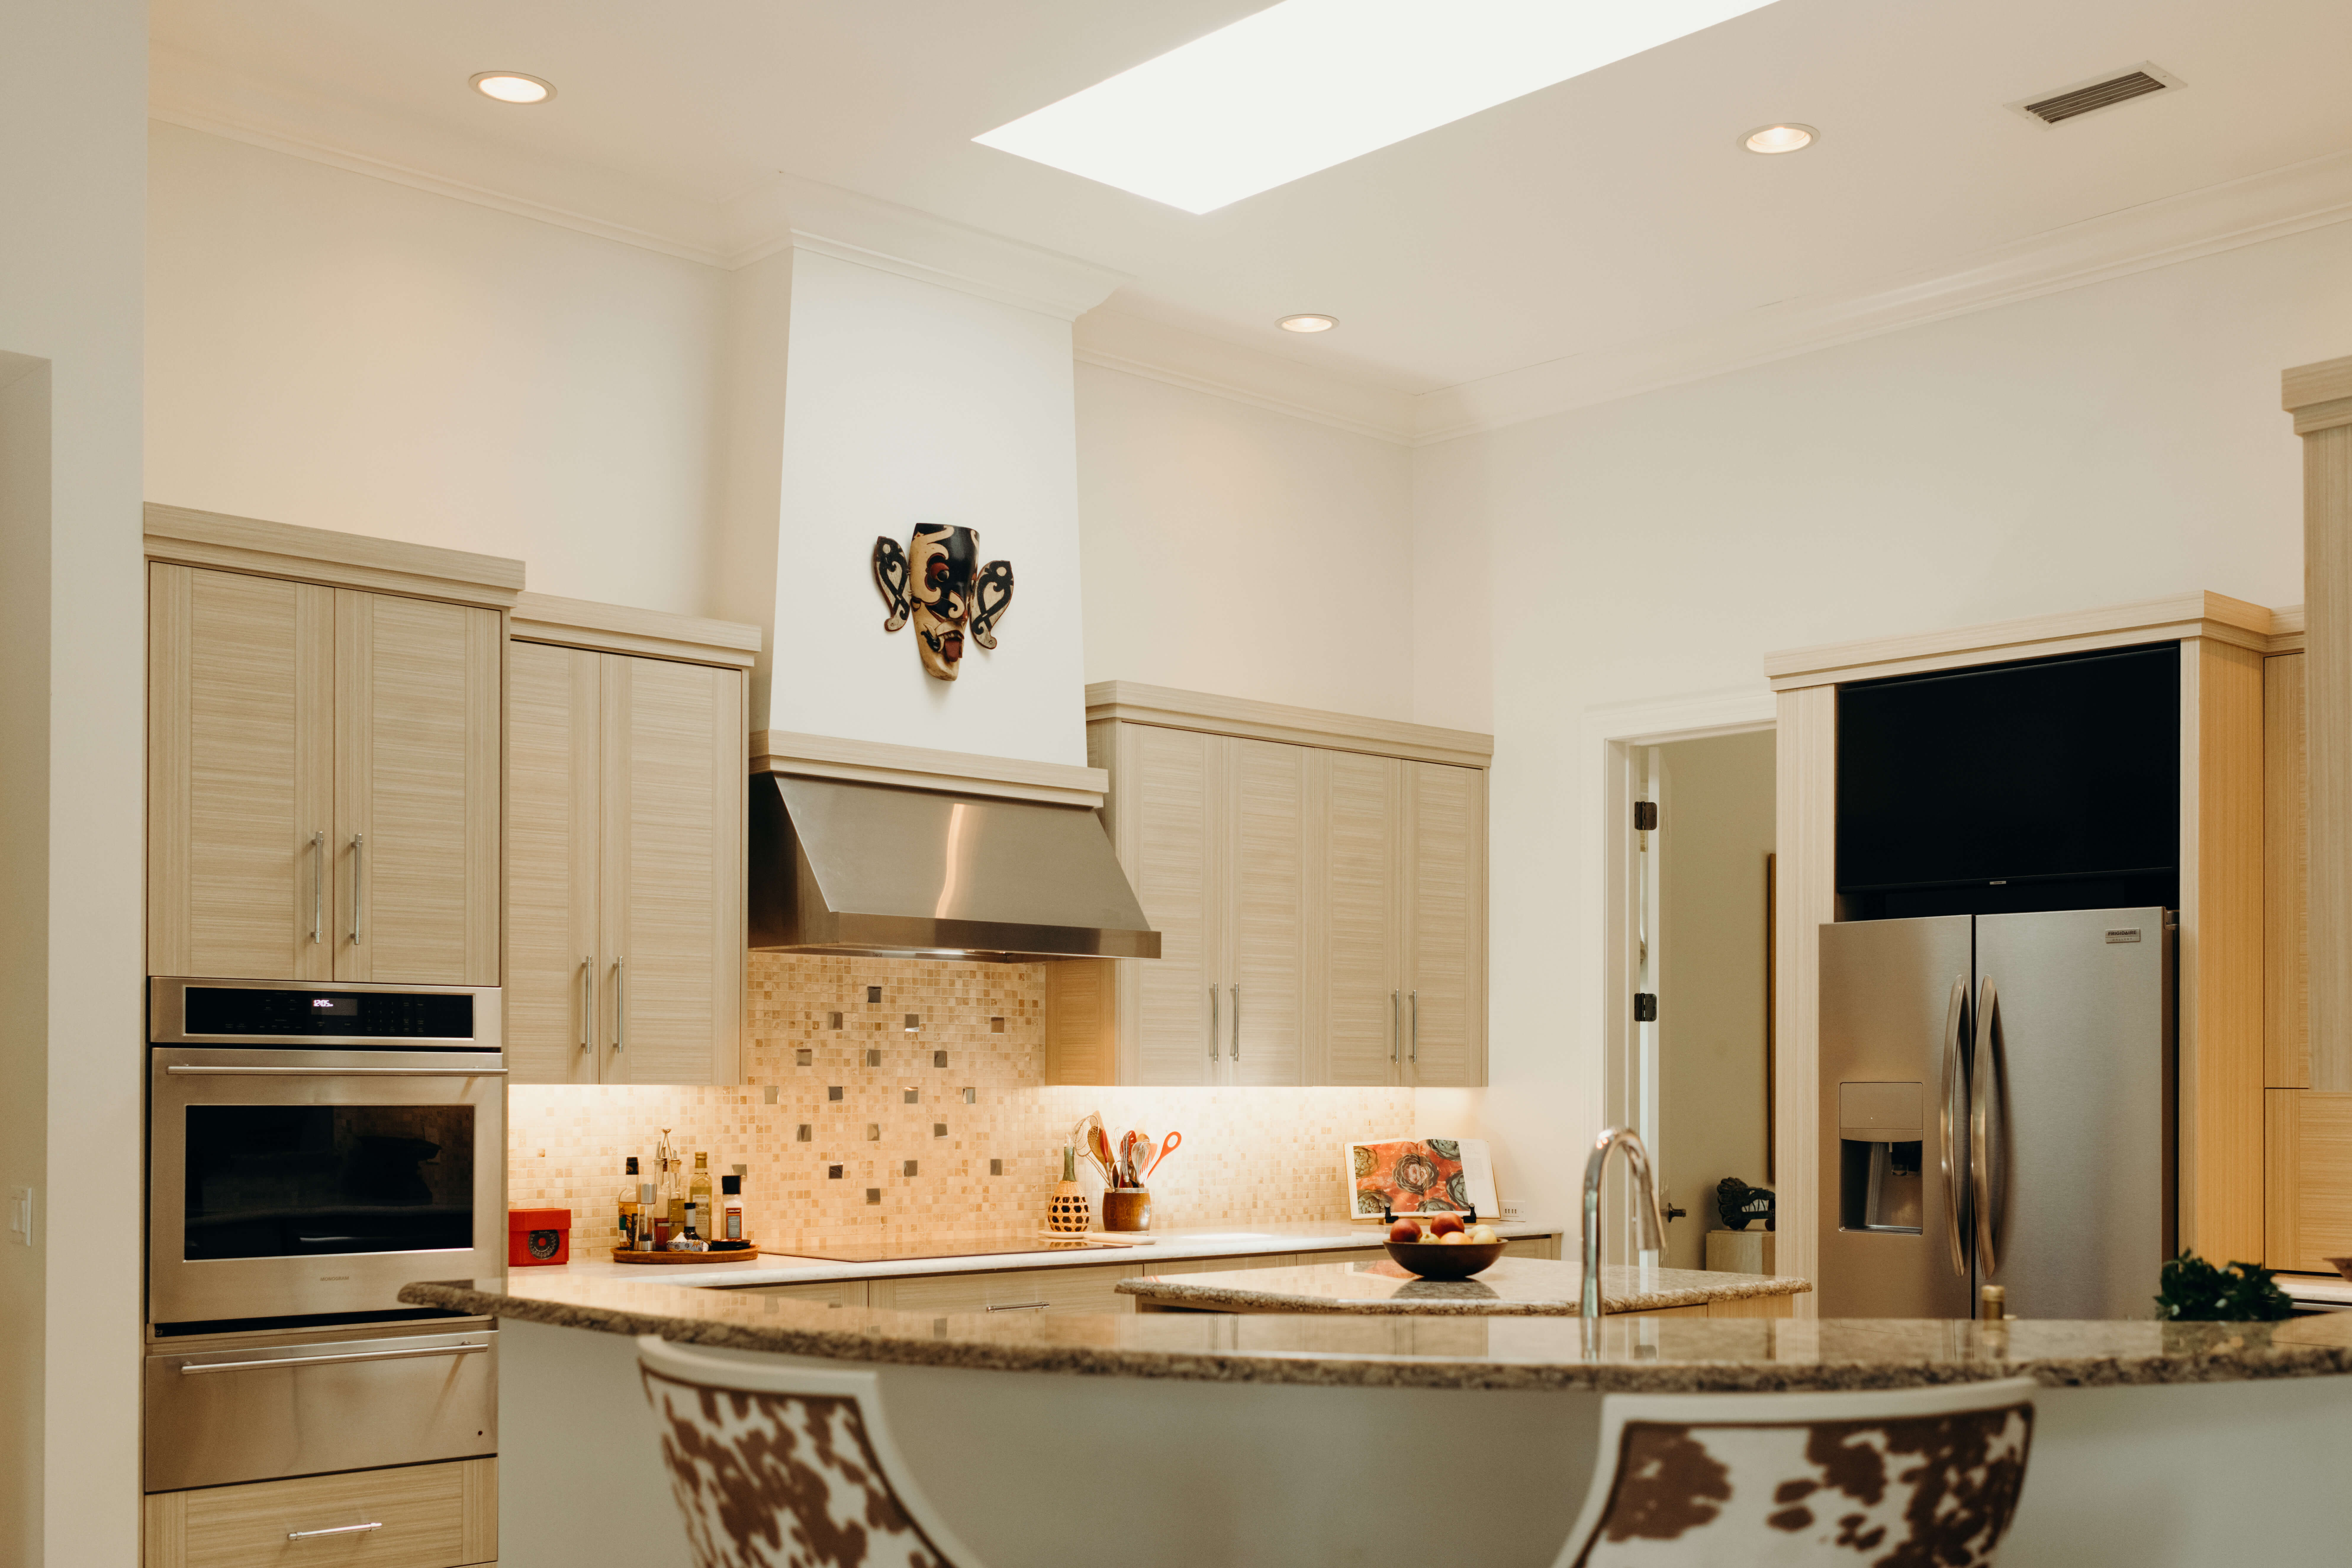 Louise Fontaine kitchen with striated cabinets